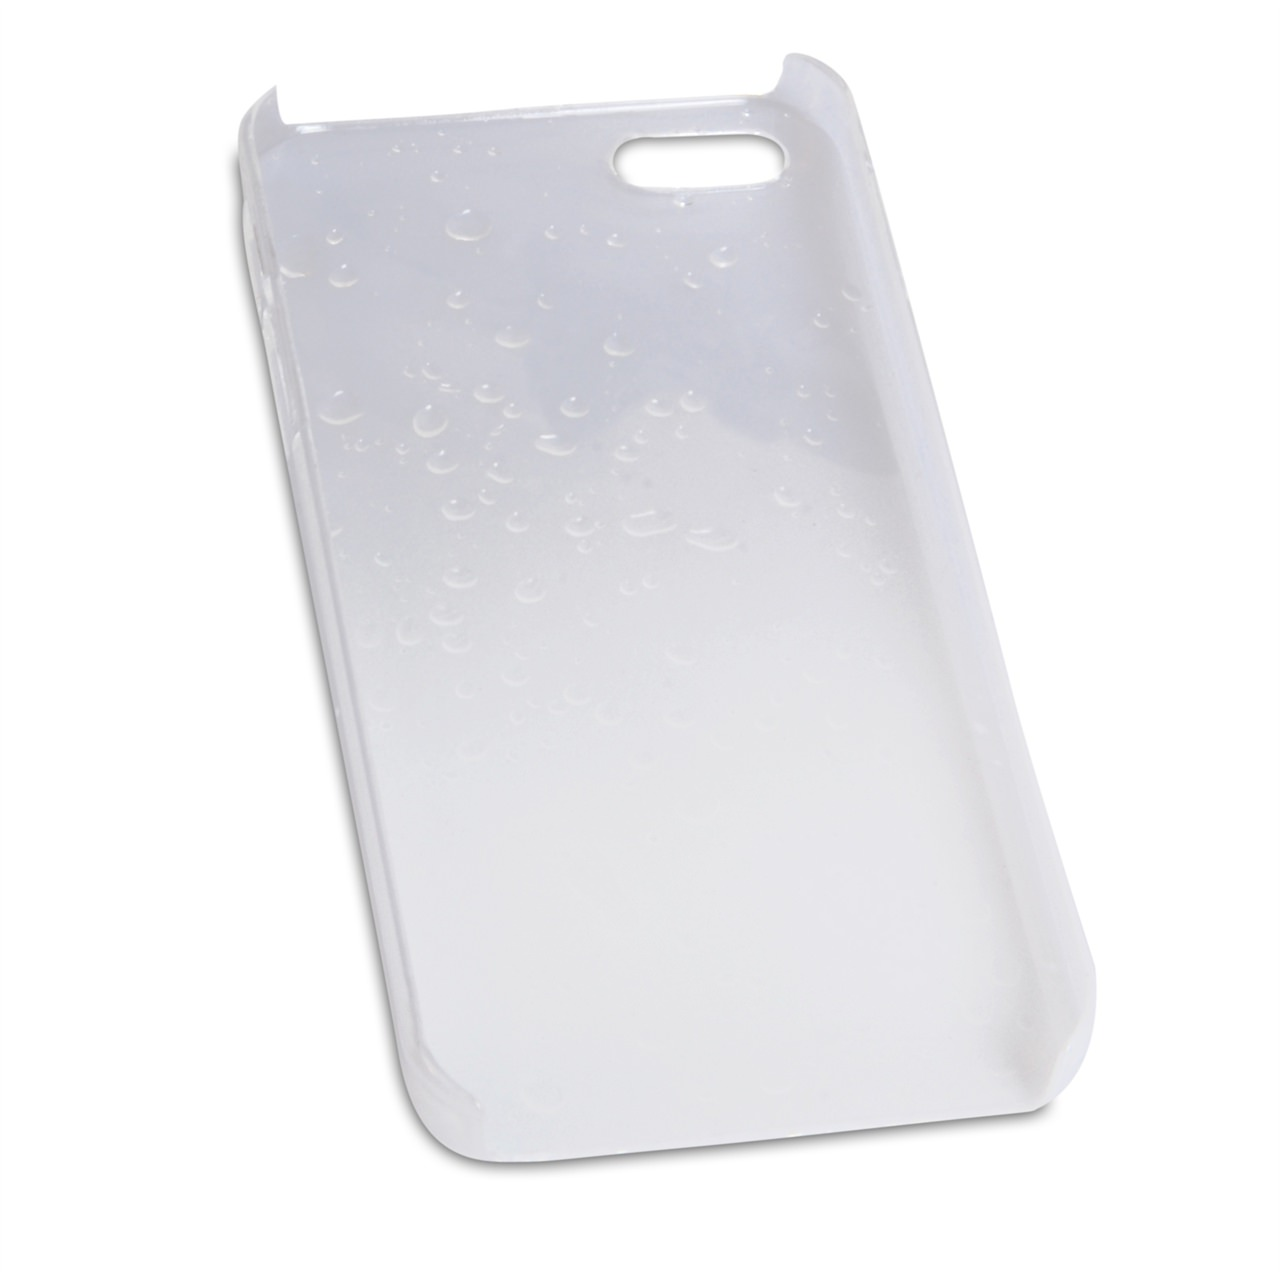 YouSave Accessories iPhone 5S White Raindrop Hard Case